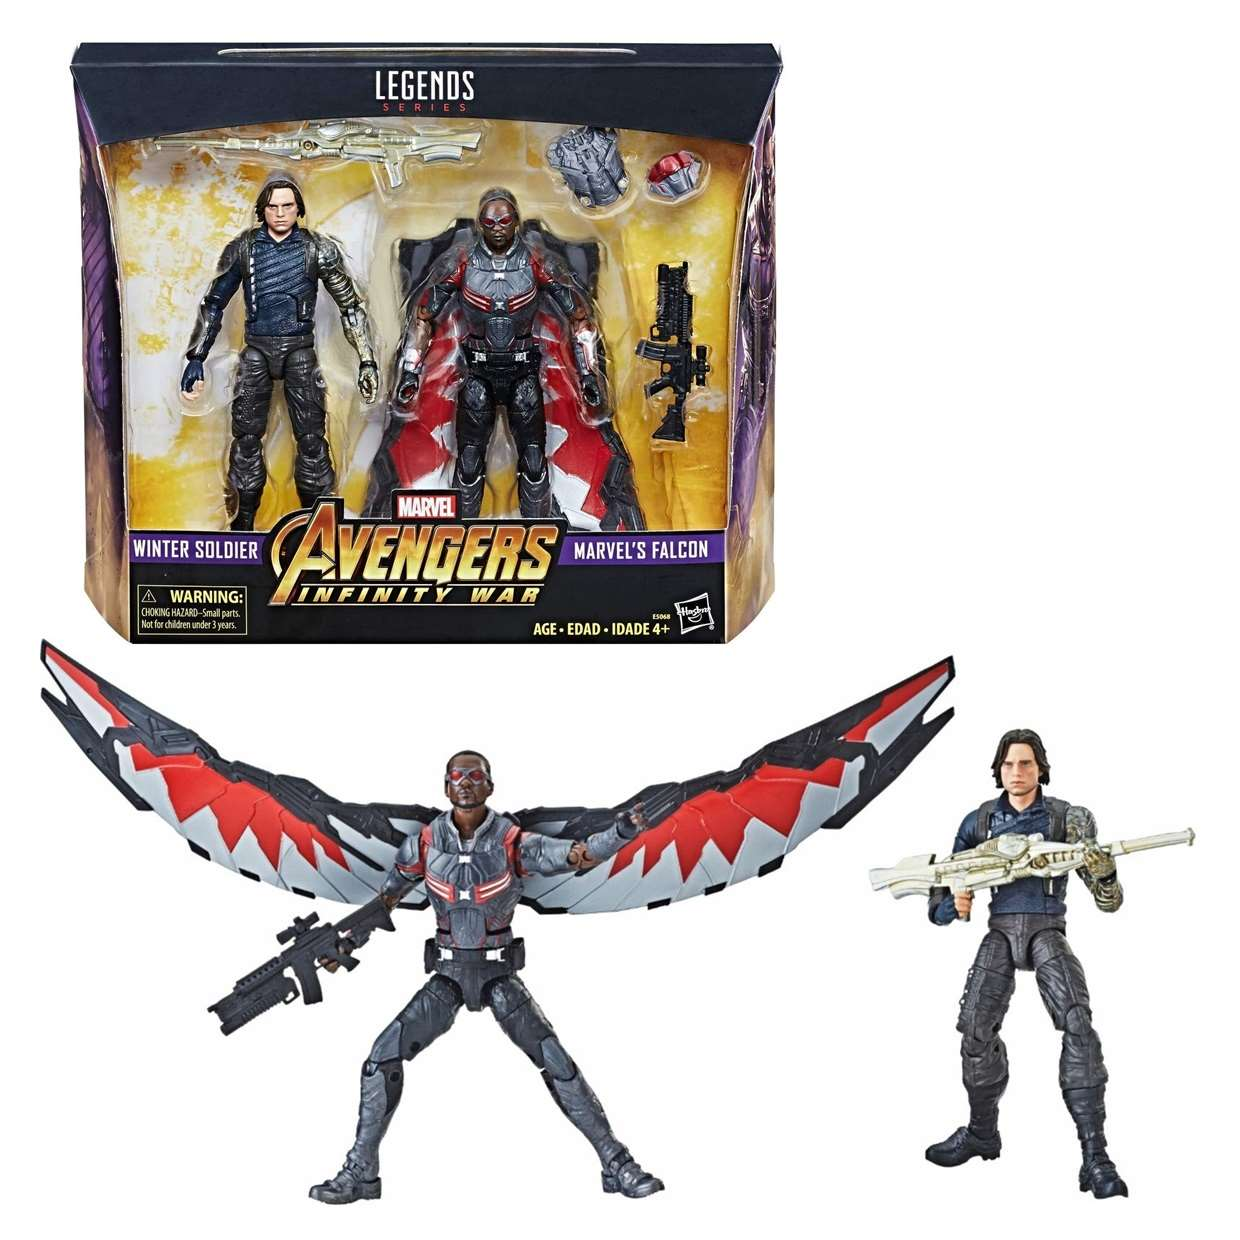 Pack 2 Figuras Winter Soldier & Falcon Infinity War Legends Series 6 Pulg